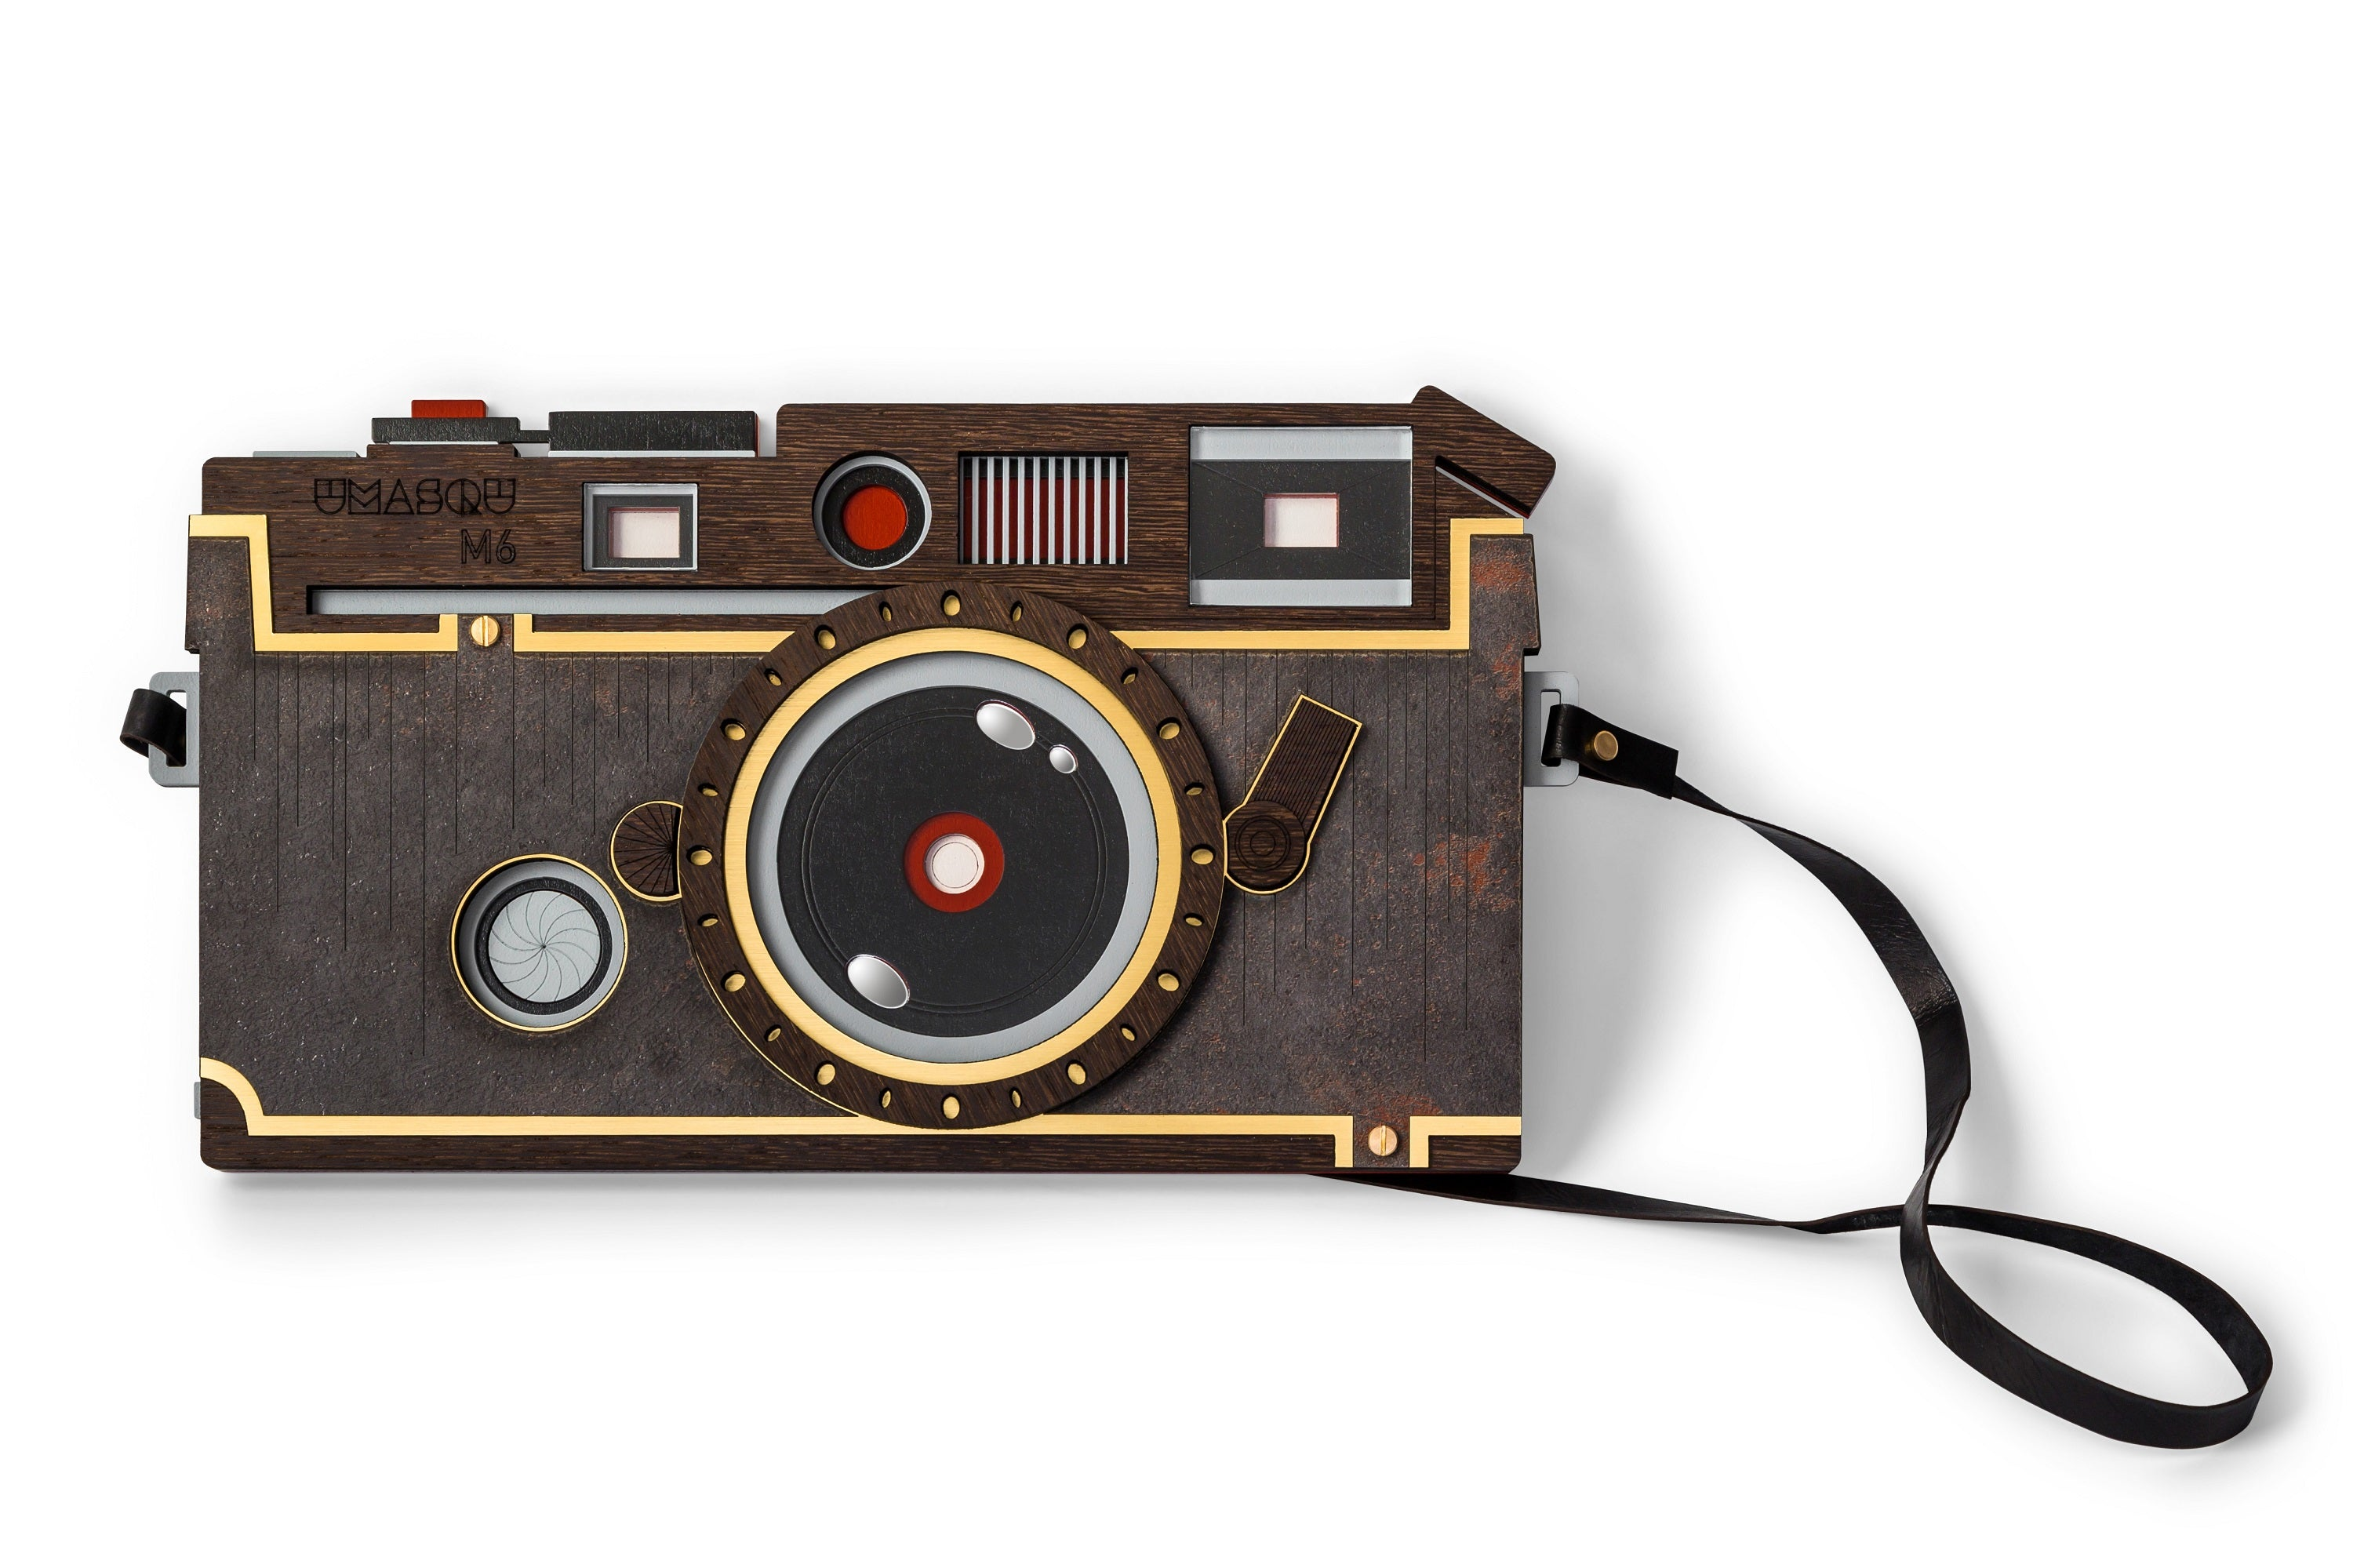 Gifts for Photographers